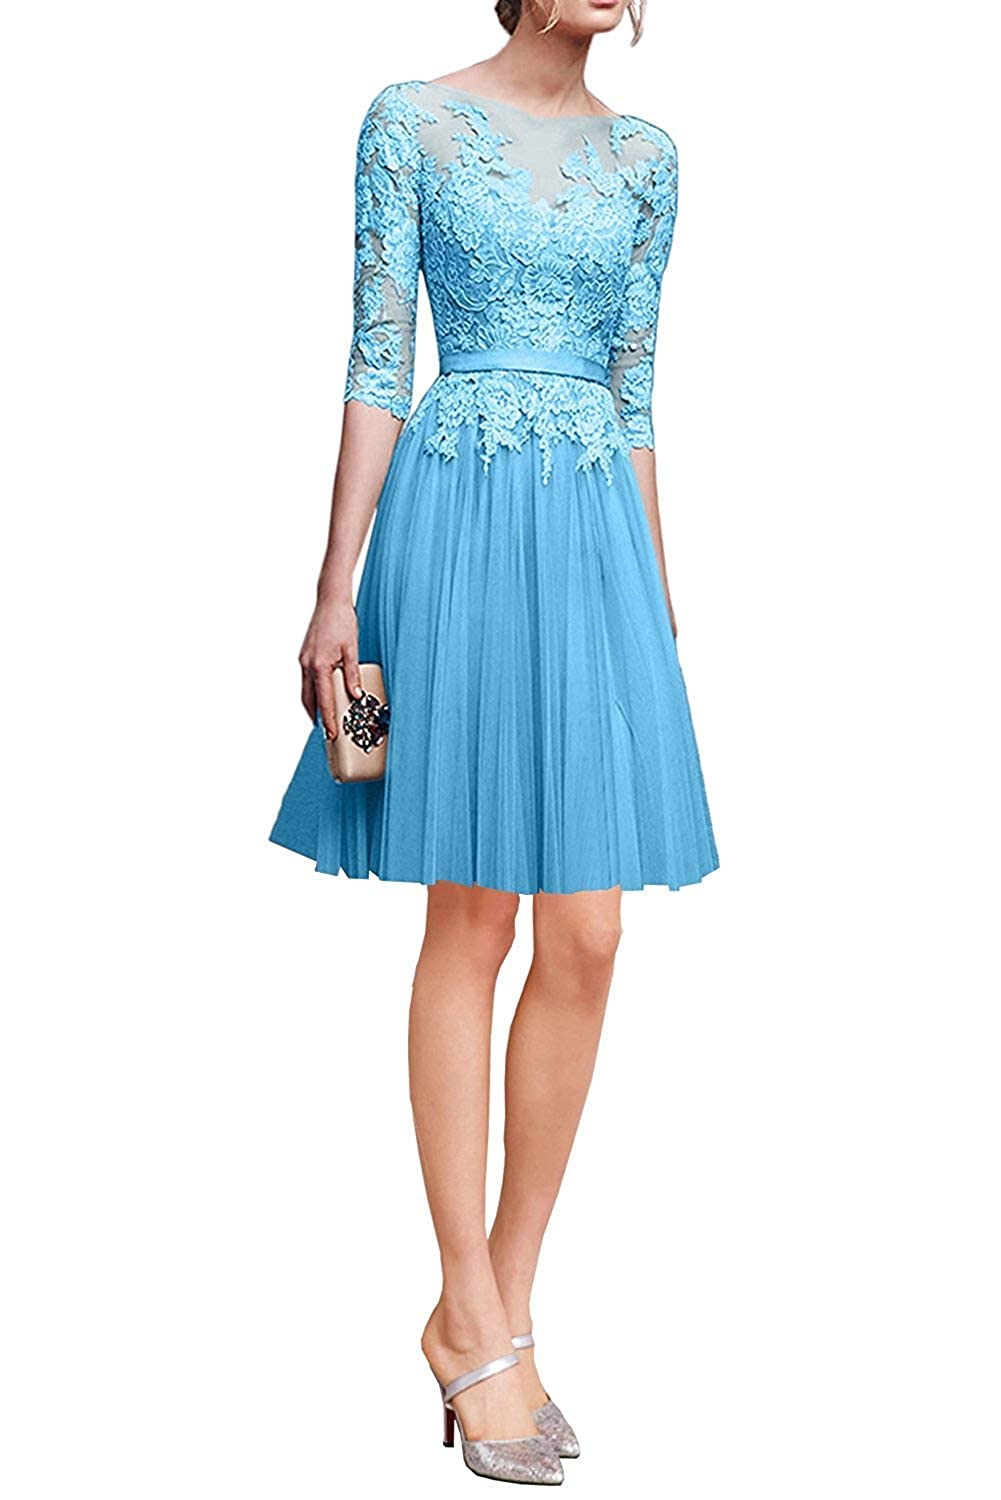 bluee ZLQQ Woman's Half Sleeves Tulle Short Bridesmaid Dresses Lace Tea Length Evening Gowns